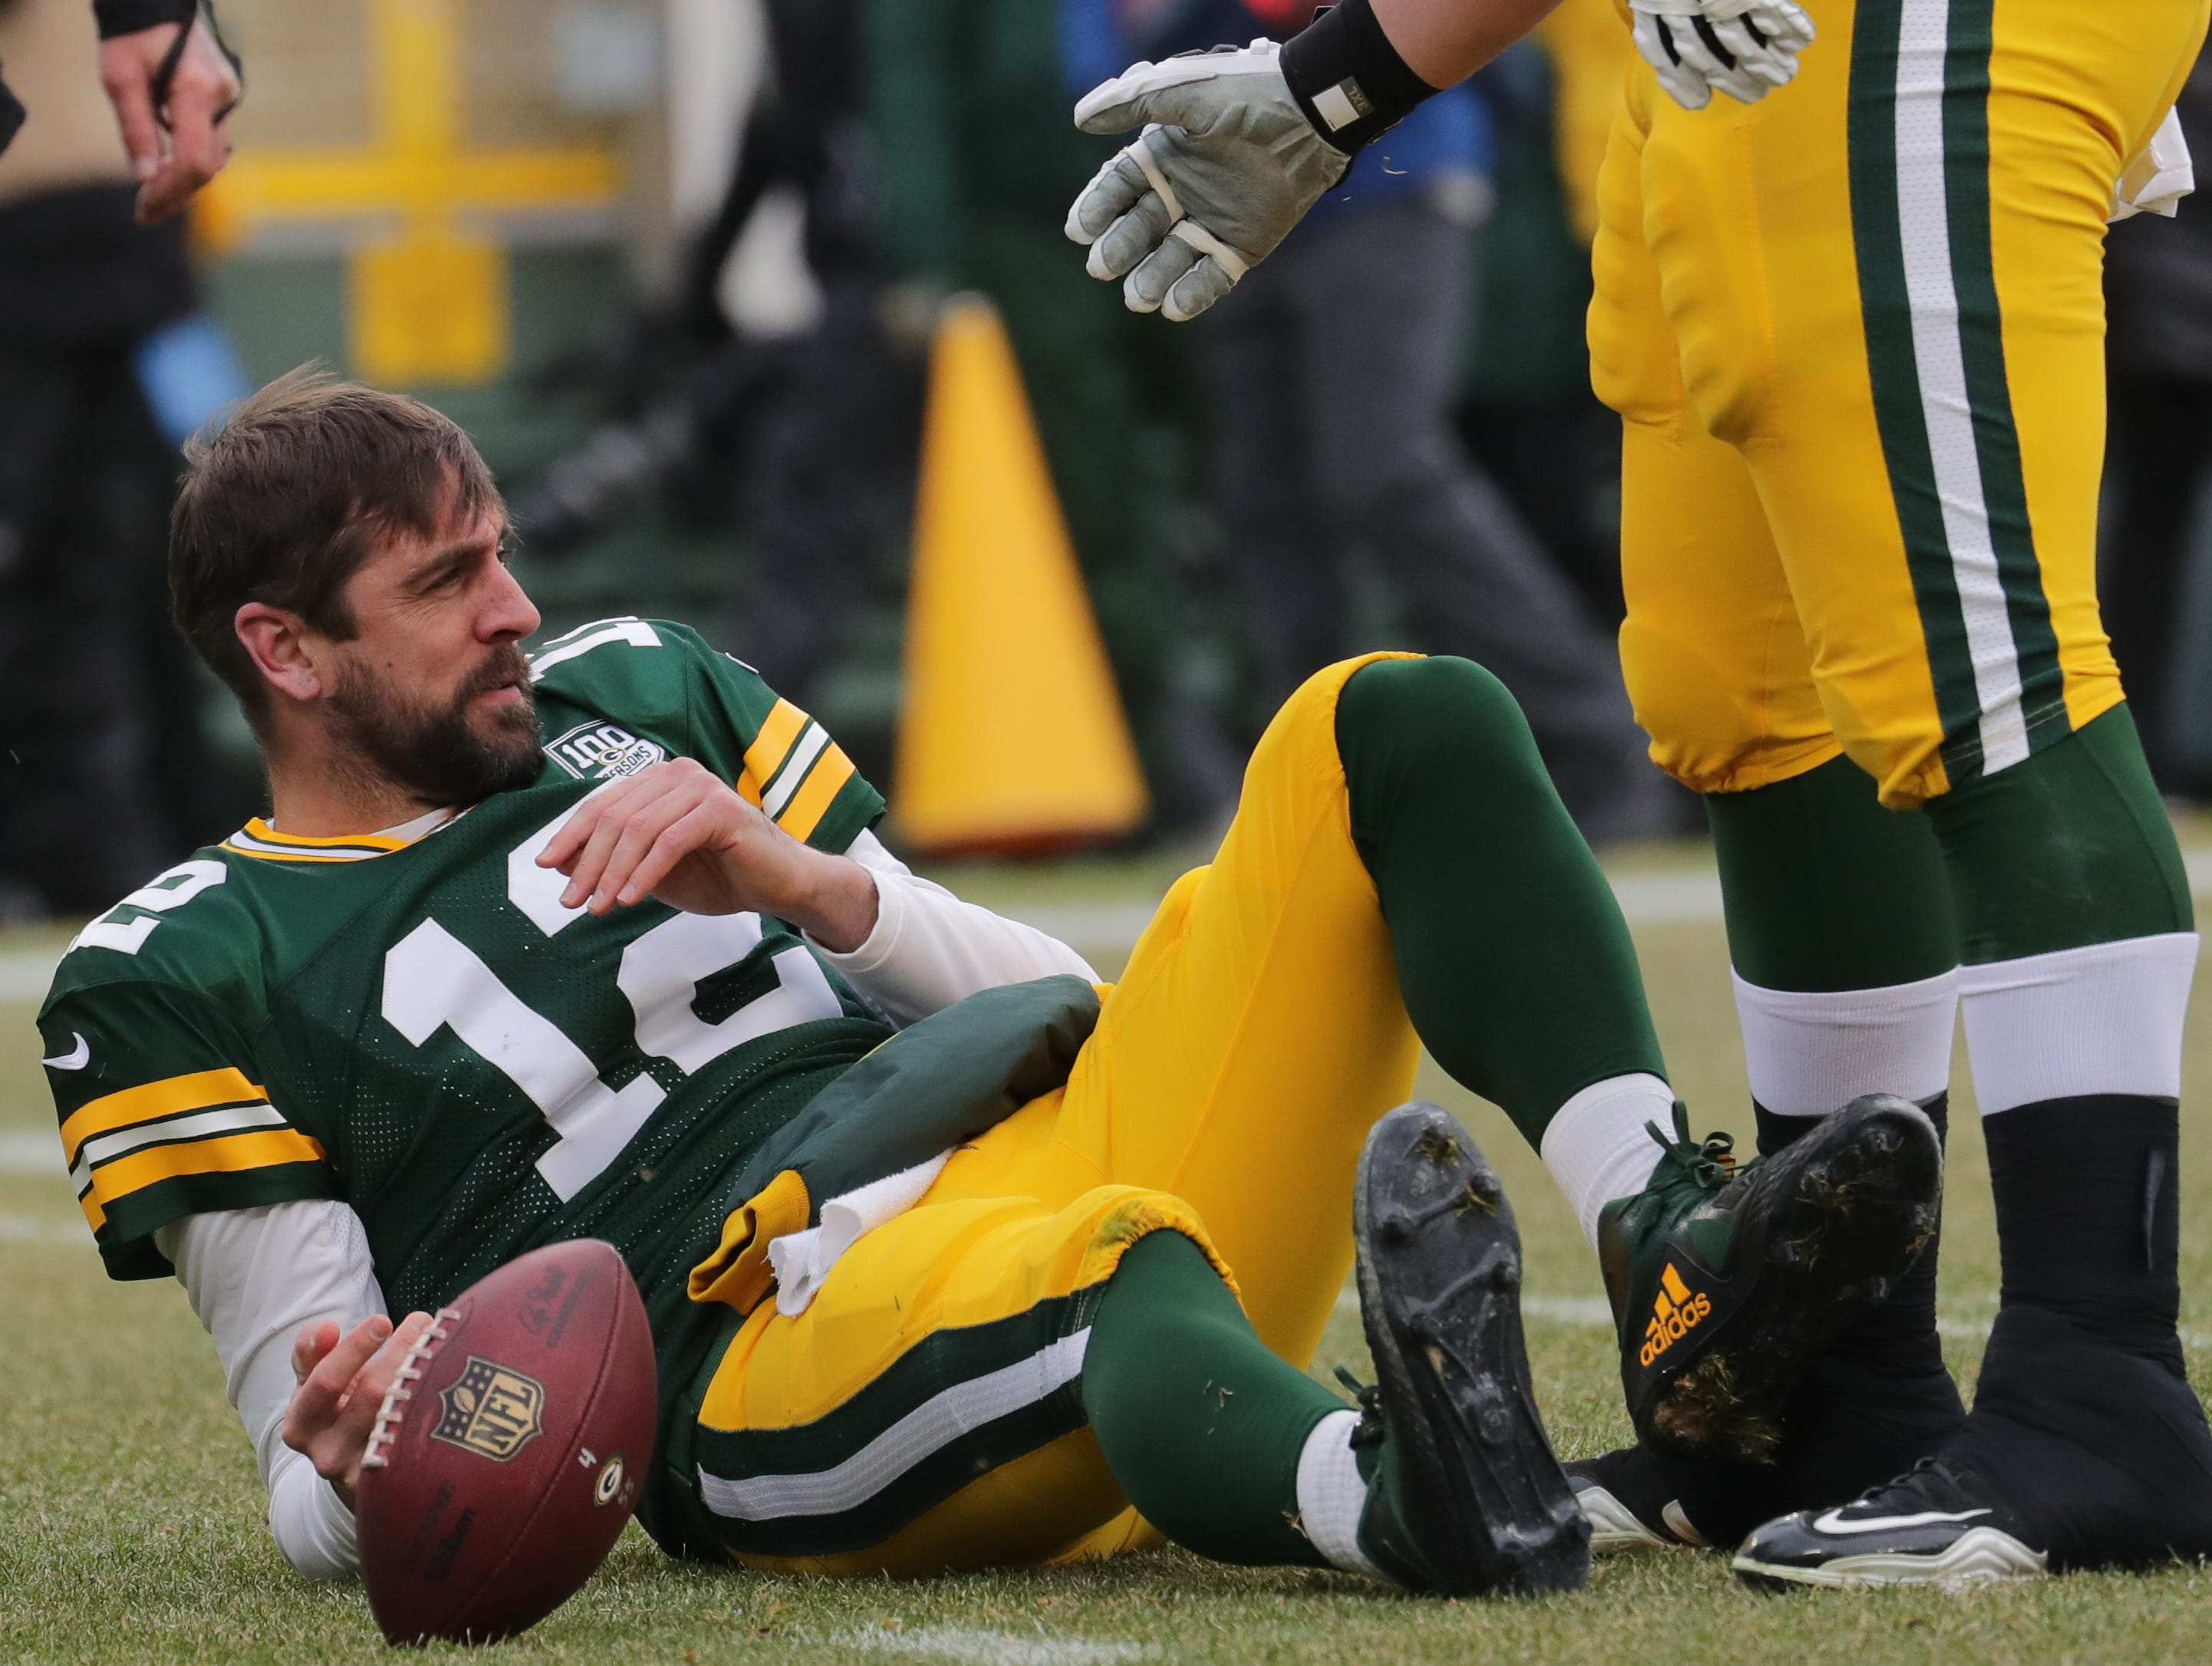 Green Bay Packers quarterback Aaron Rodgers (12) gets up after being sacked during the first quarter of their game Sunday, December 30, 2018 at Lambeau Field in Green Bay, Wis. The Detroit Lions beat the Green Bay Packers 31-0.  MARK HOFFMAN/MILWAUKEE JOURNAL SENTINEL